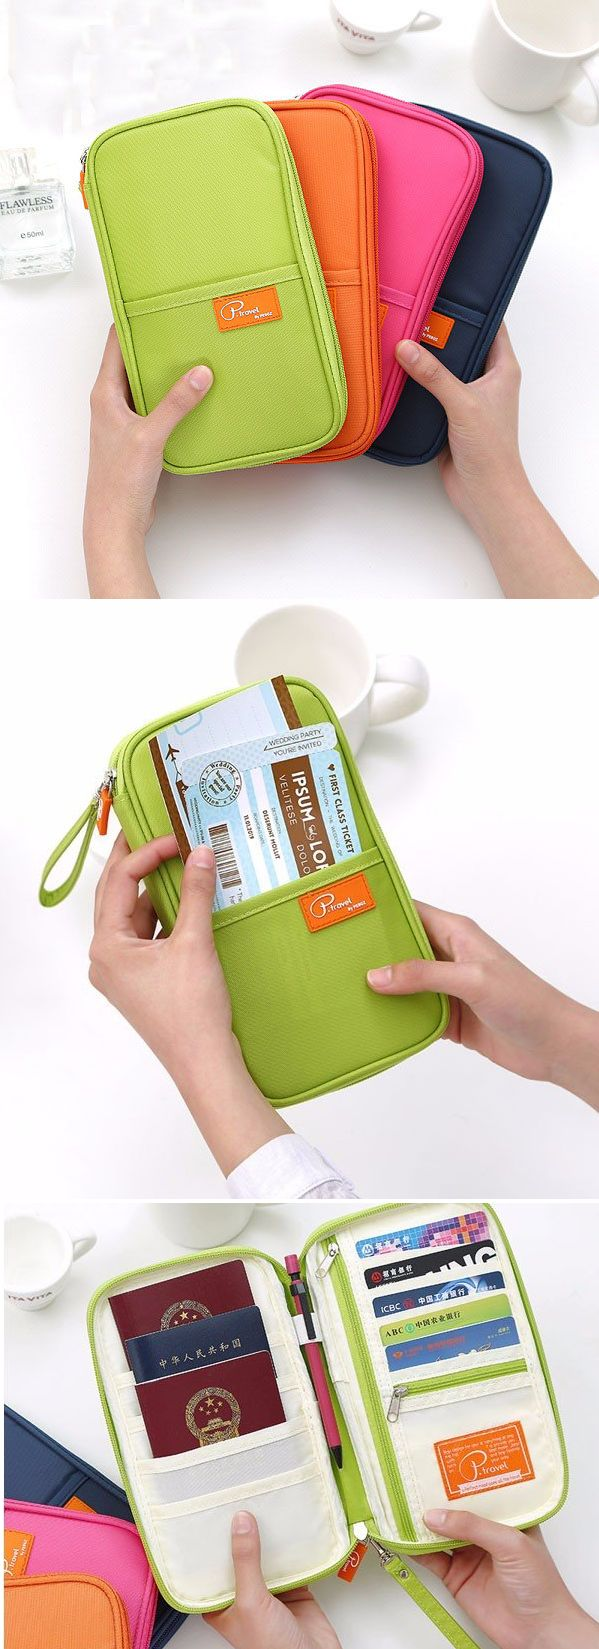 Long Multifuntional Credentials Card Storage Bags Holder Passport Papers Handbag